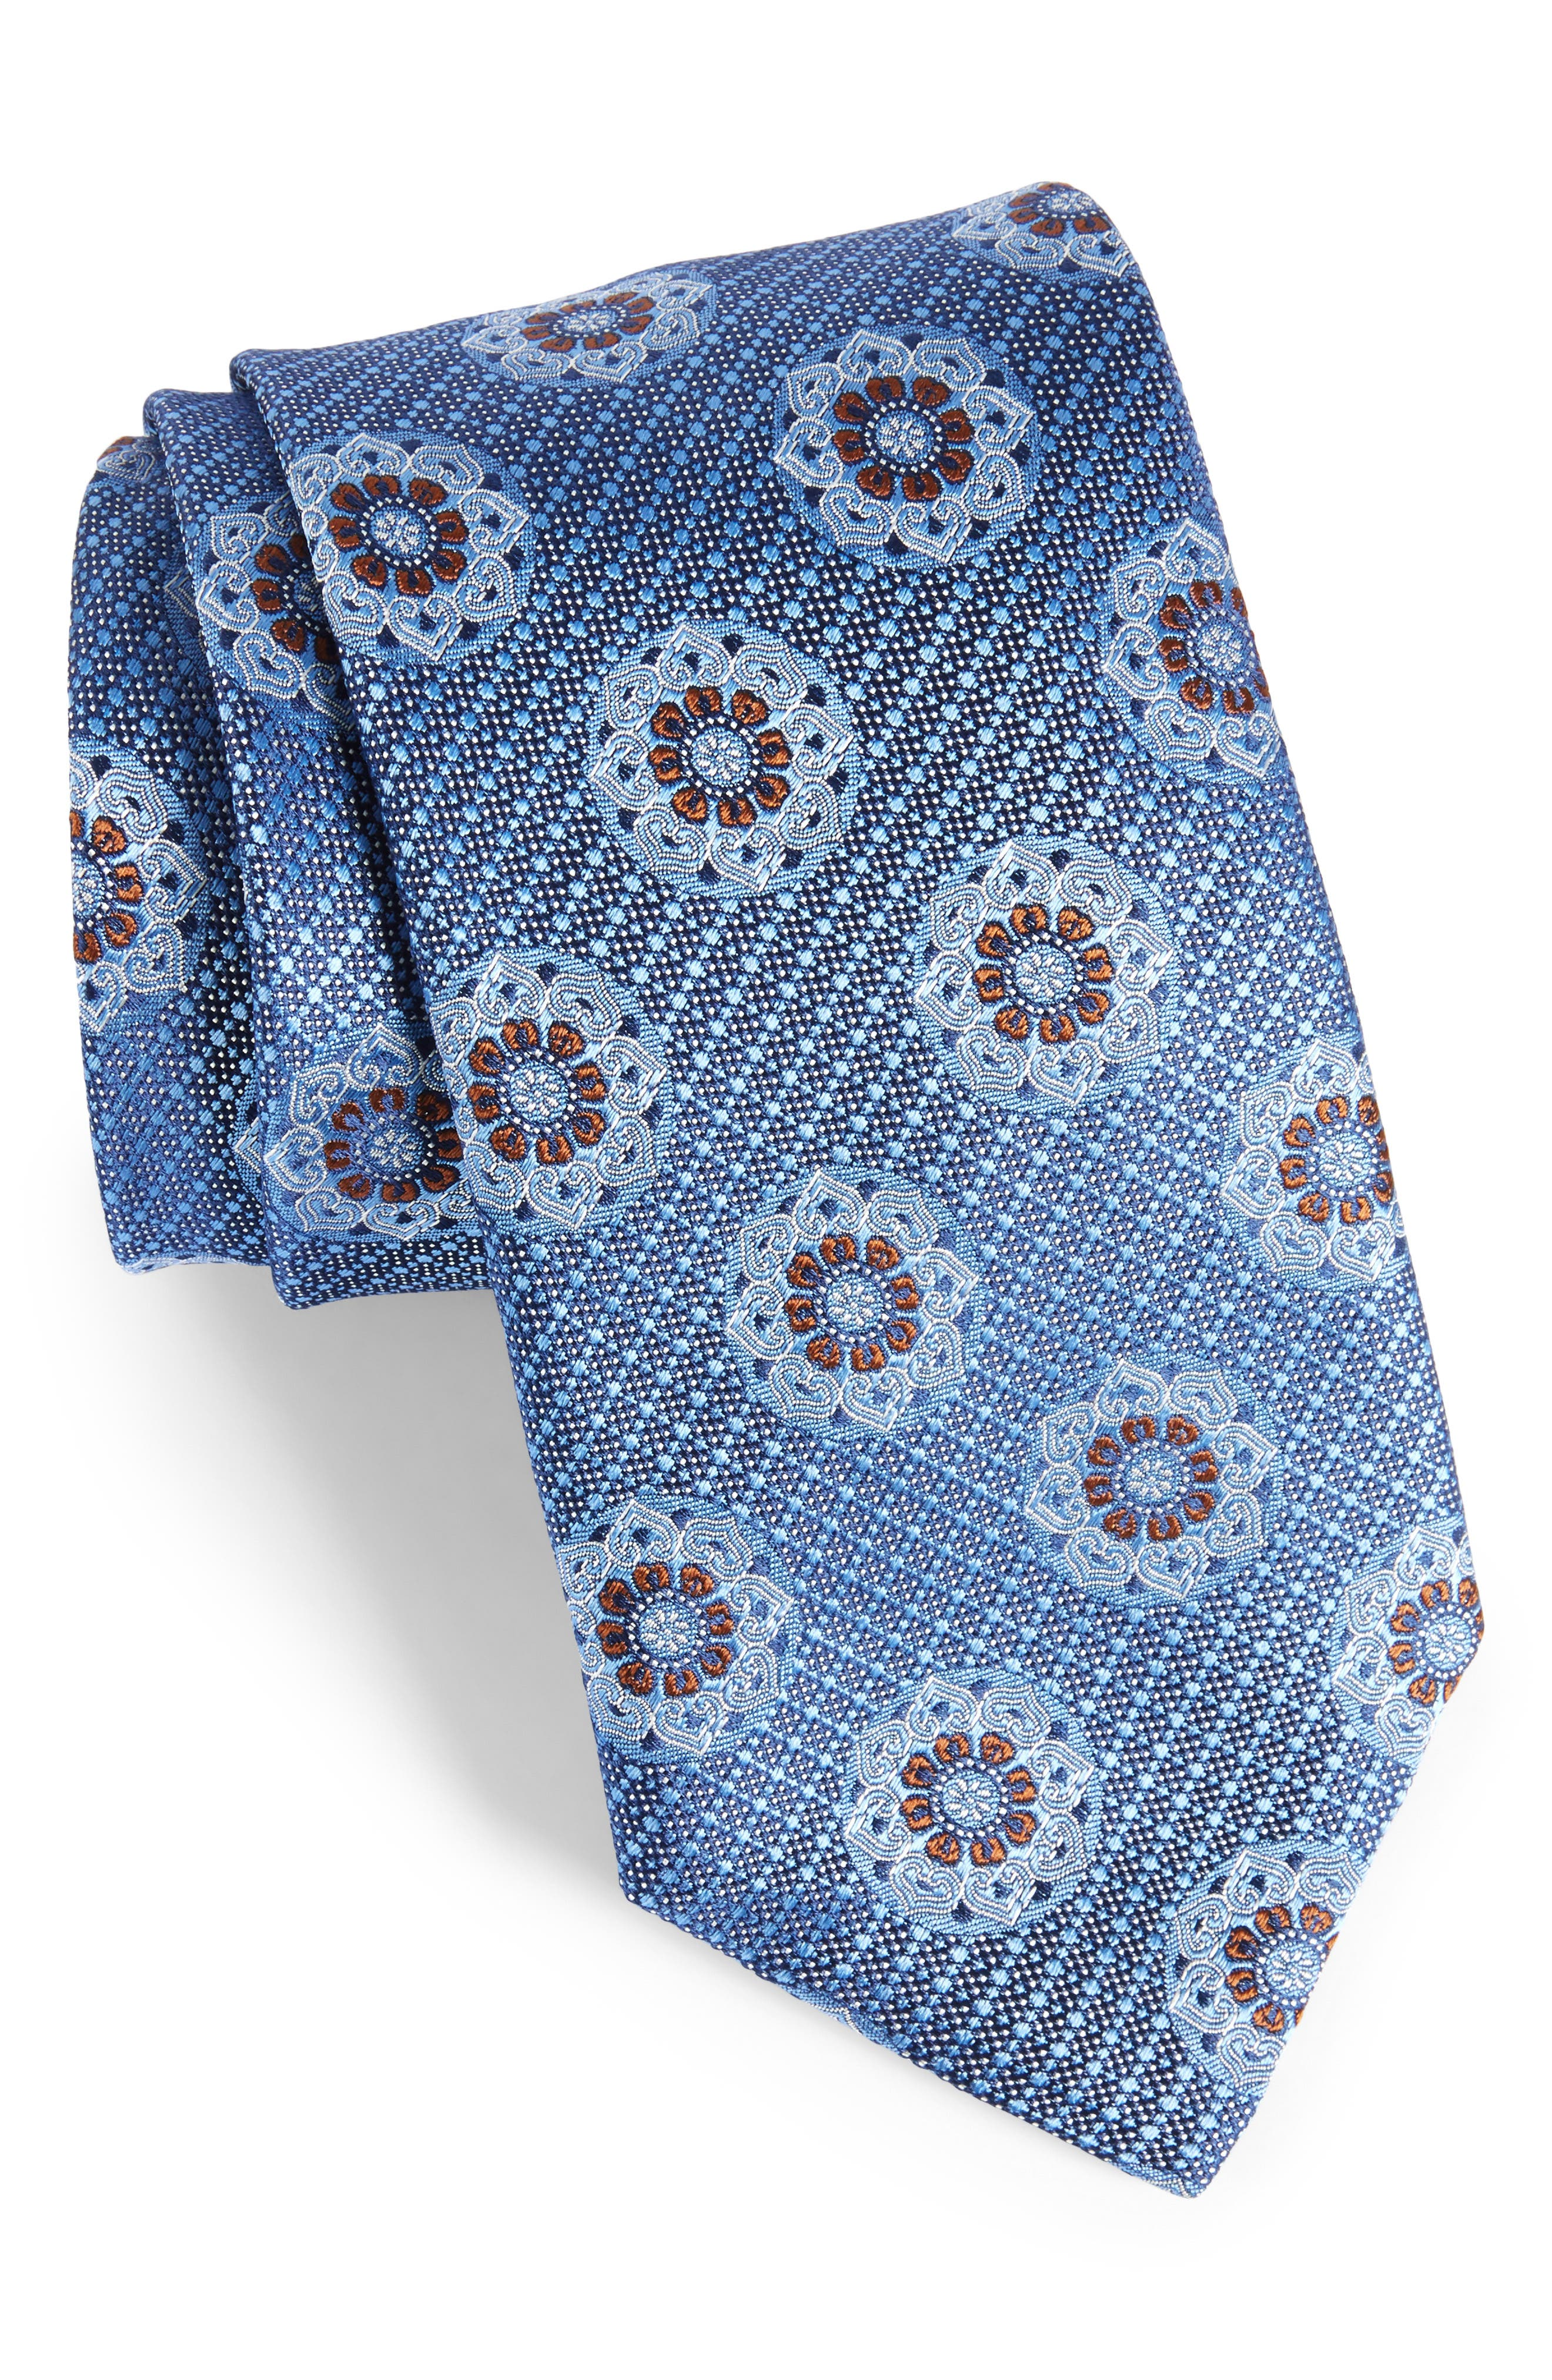 Alternate Image 1 Selected - Canali Medallion Silk Tie (X-Long)